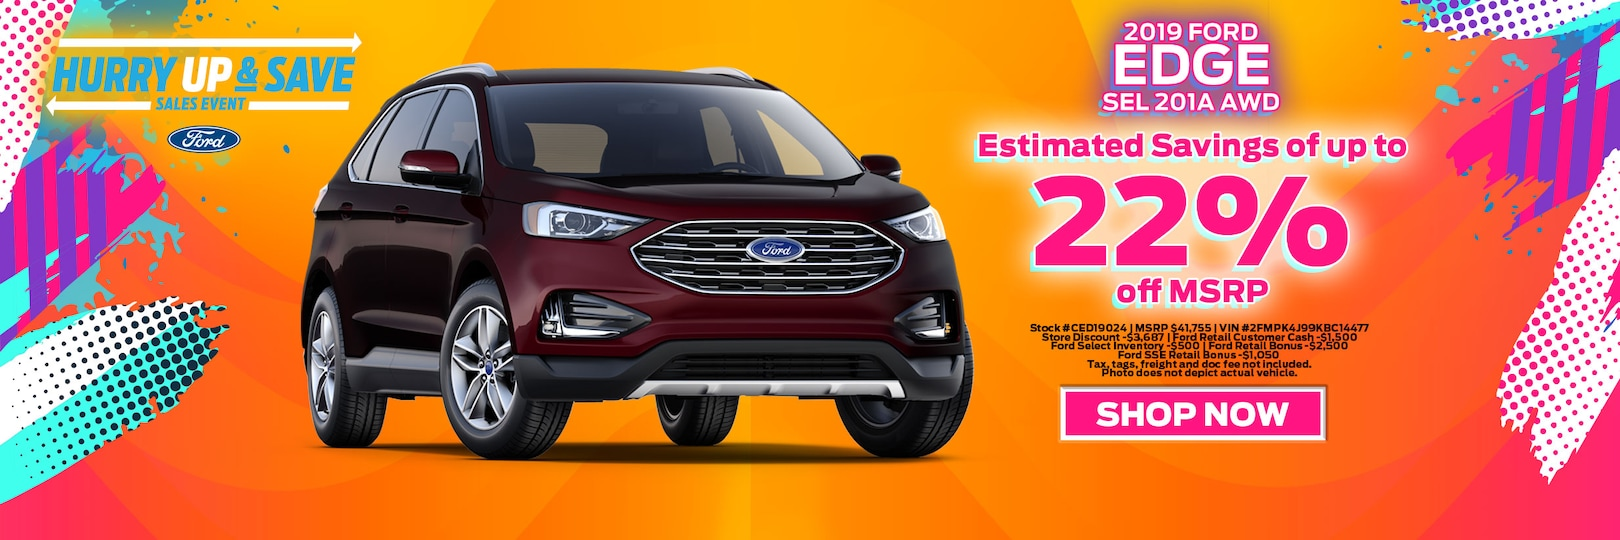 Ford Dealers Nj >> My Ford Dealer In Southern New Jersey Chapman Ford Local Ford